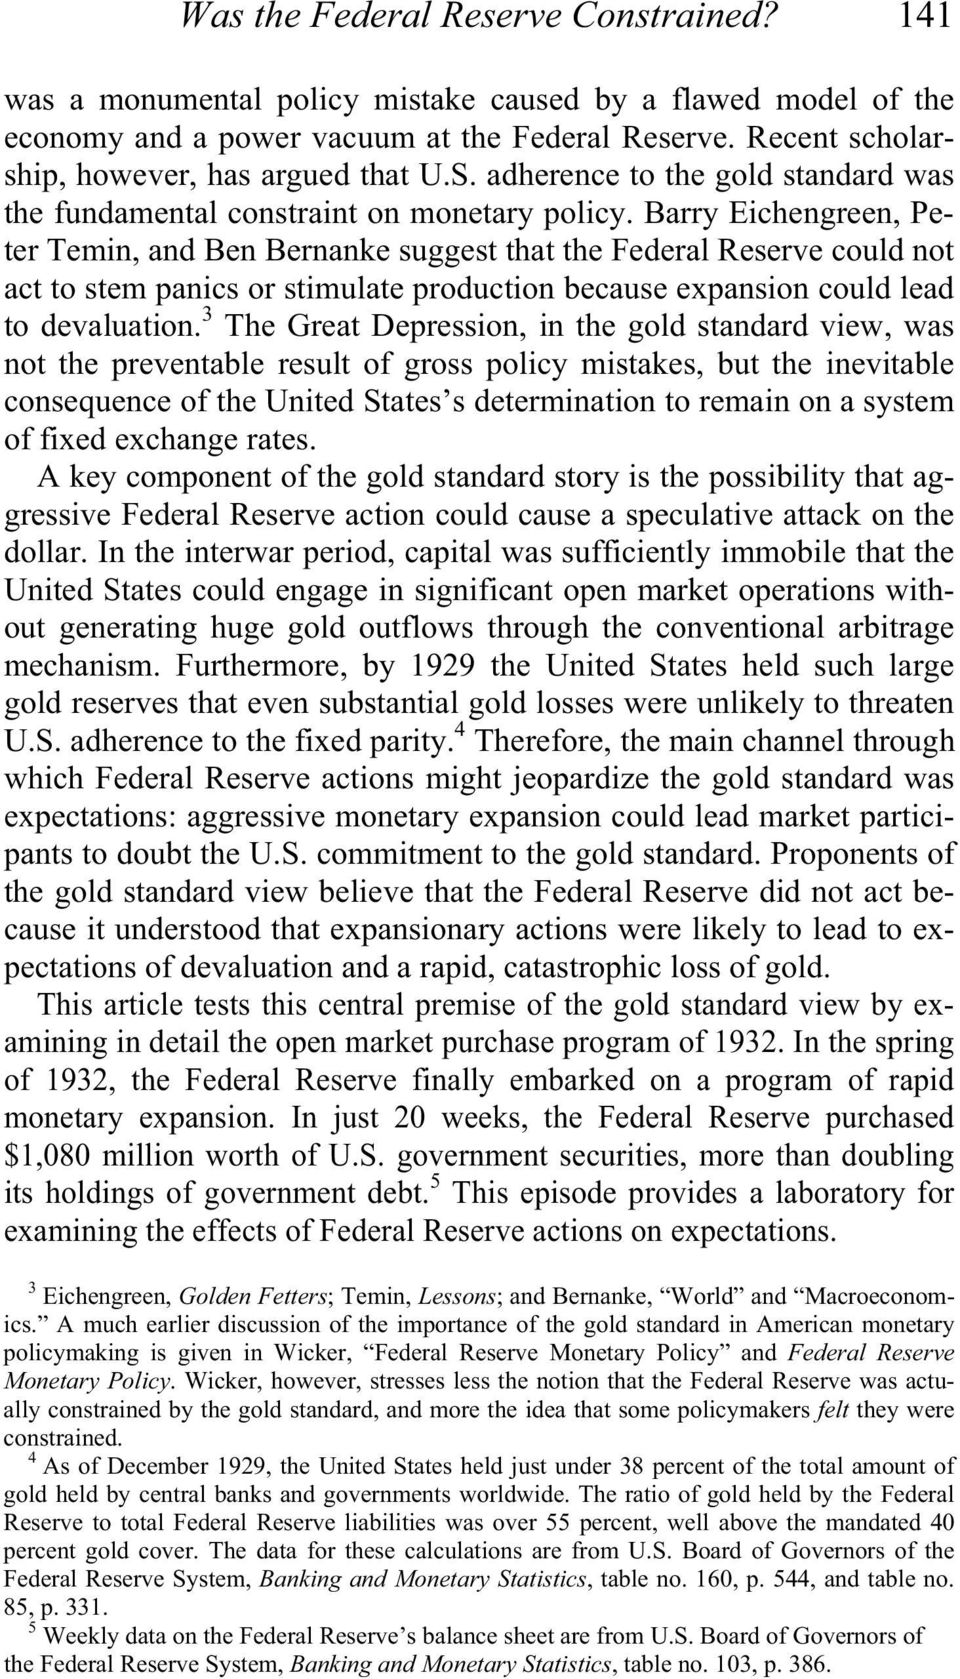 Barry Eichengreen, Peter Temin, and Ben Bernanke suggest that the Federal Reserve could not act to stem panics or stimulate production because expansion could lead to devaluation.